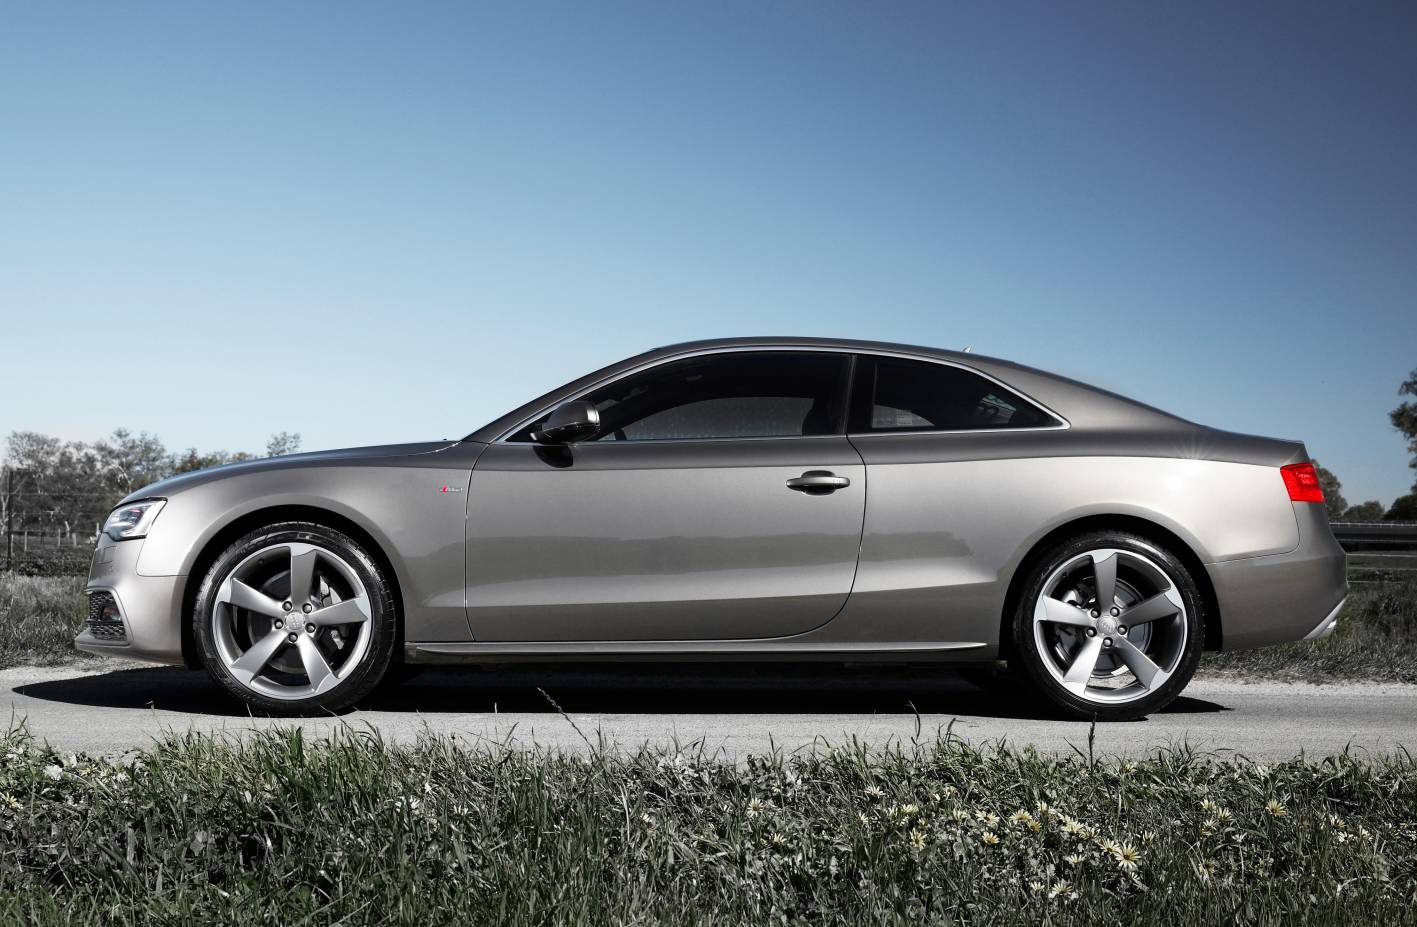 2015 audi a5 to shed around 90kg report performancedrive. Black Bedroom Furniture Sets. Home Design Ideas